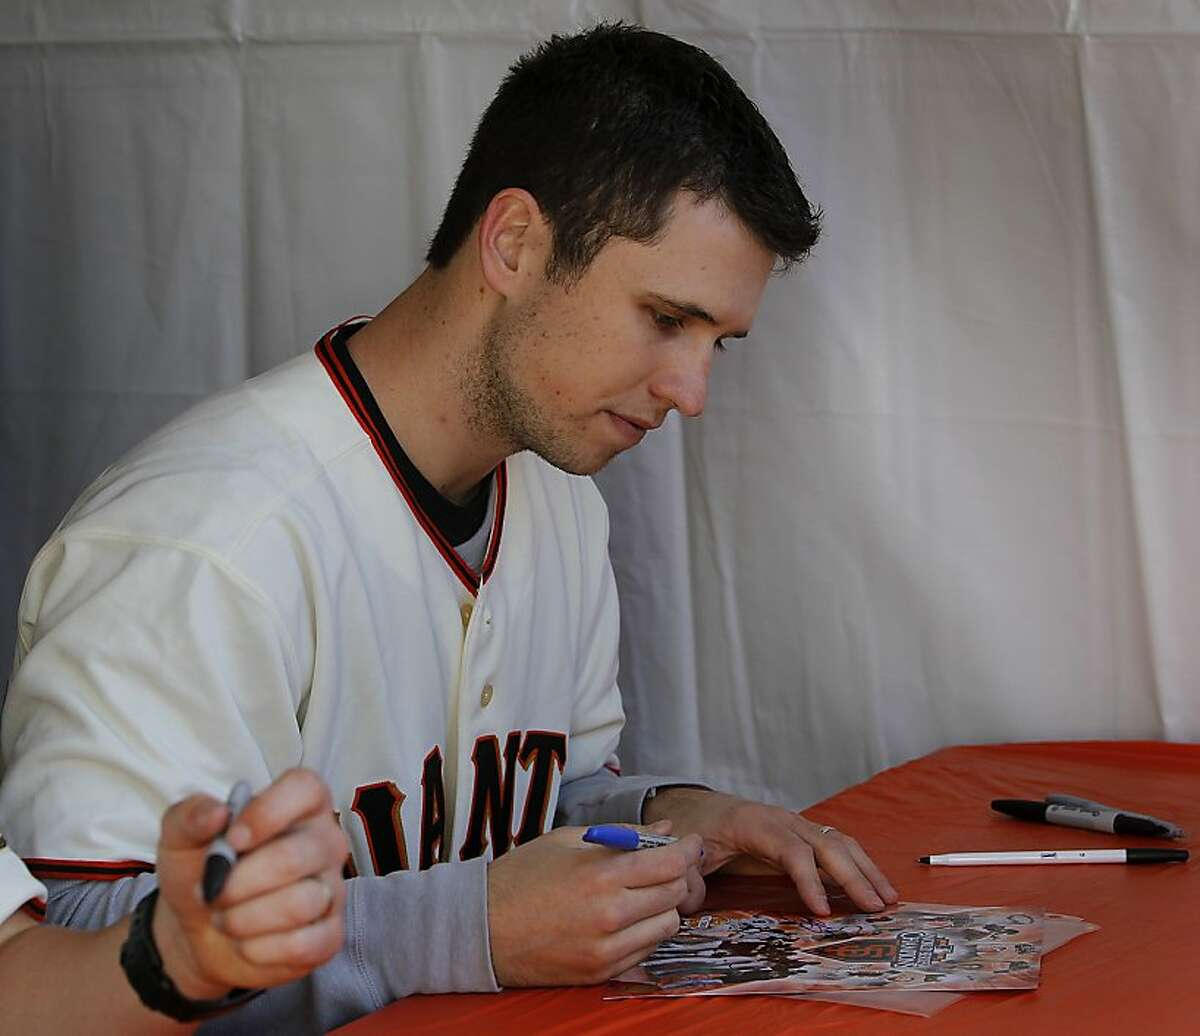 Catcher Buster Posey autographs memorabilia for fans at the annual Giants FanFest at AT&T Park in San Francisco, Calif. on Saturday, Feb. 4, 2012.